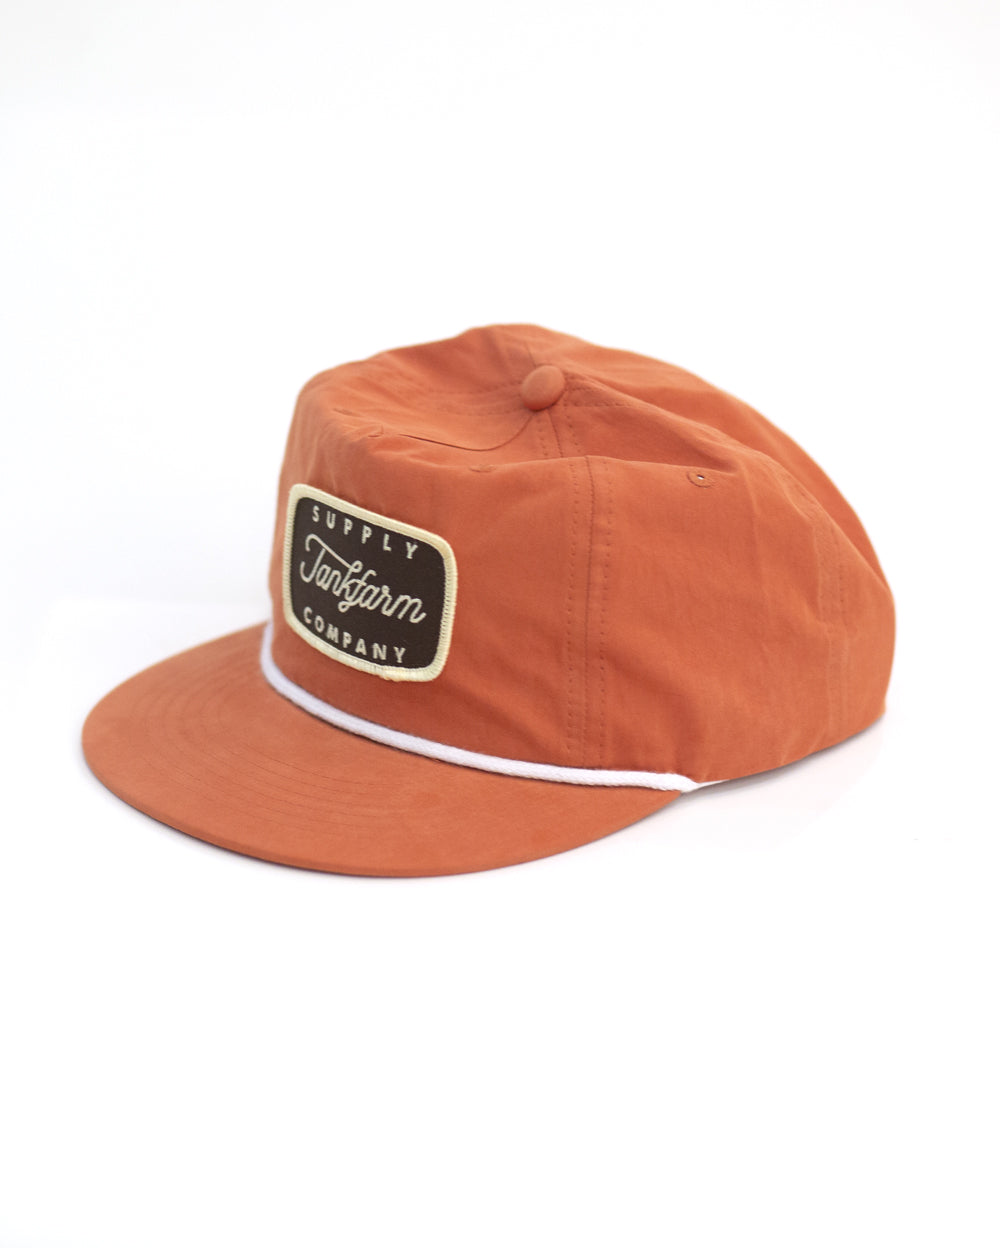 SUPPLY SHIELD SNAP BACK- ORANGE - Tankfarm & Co.